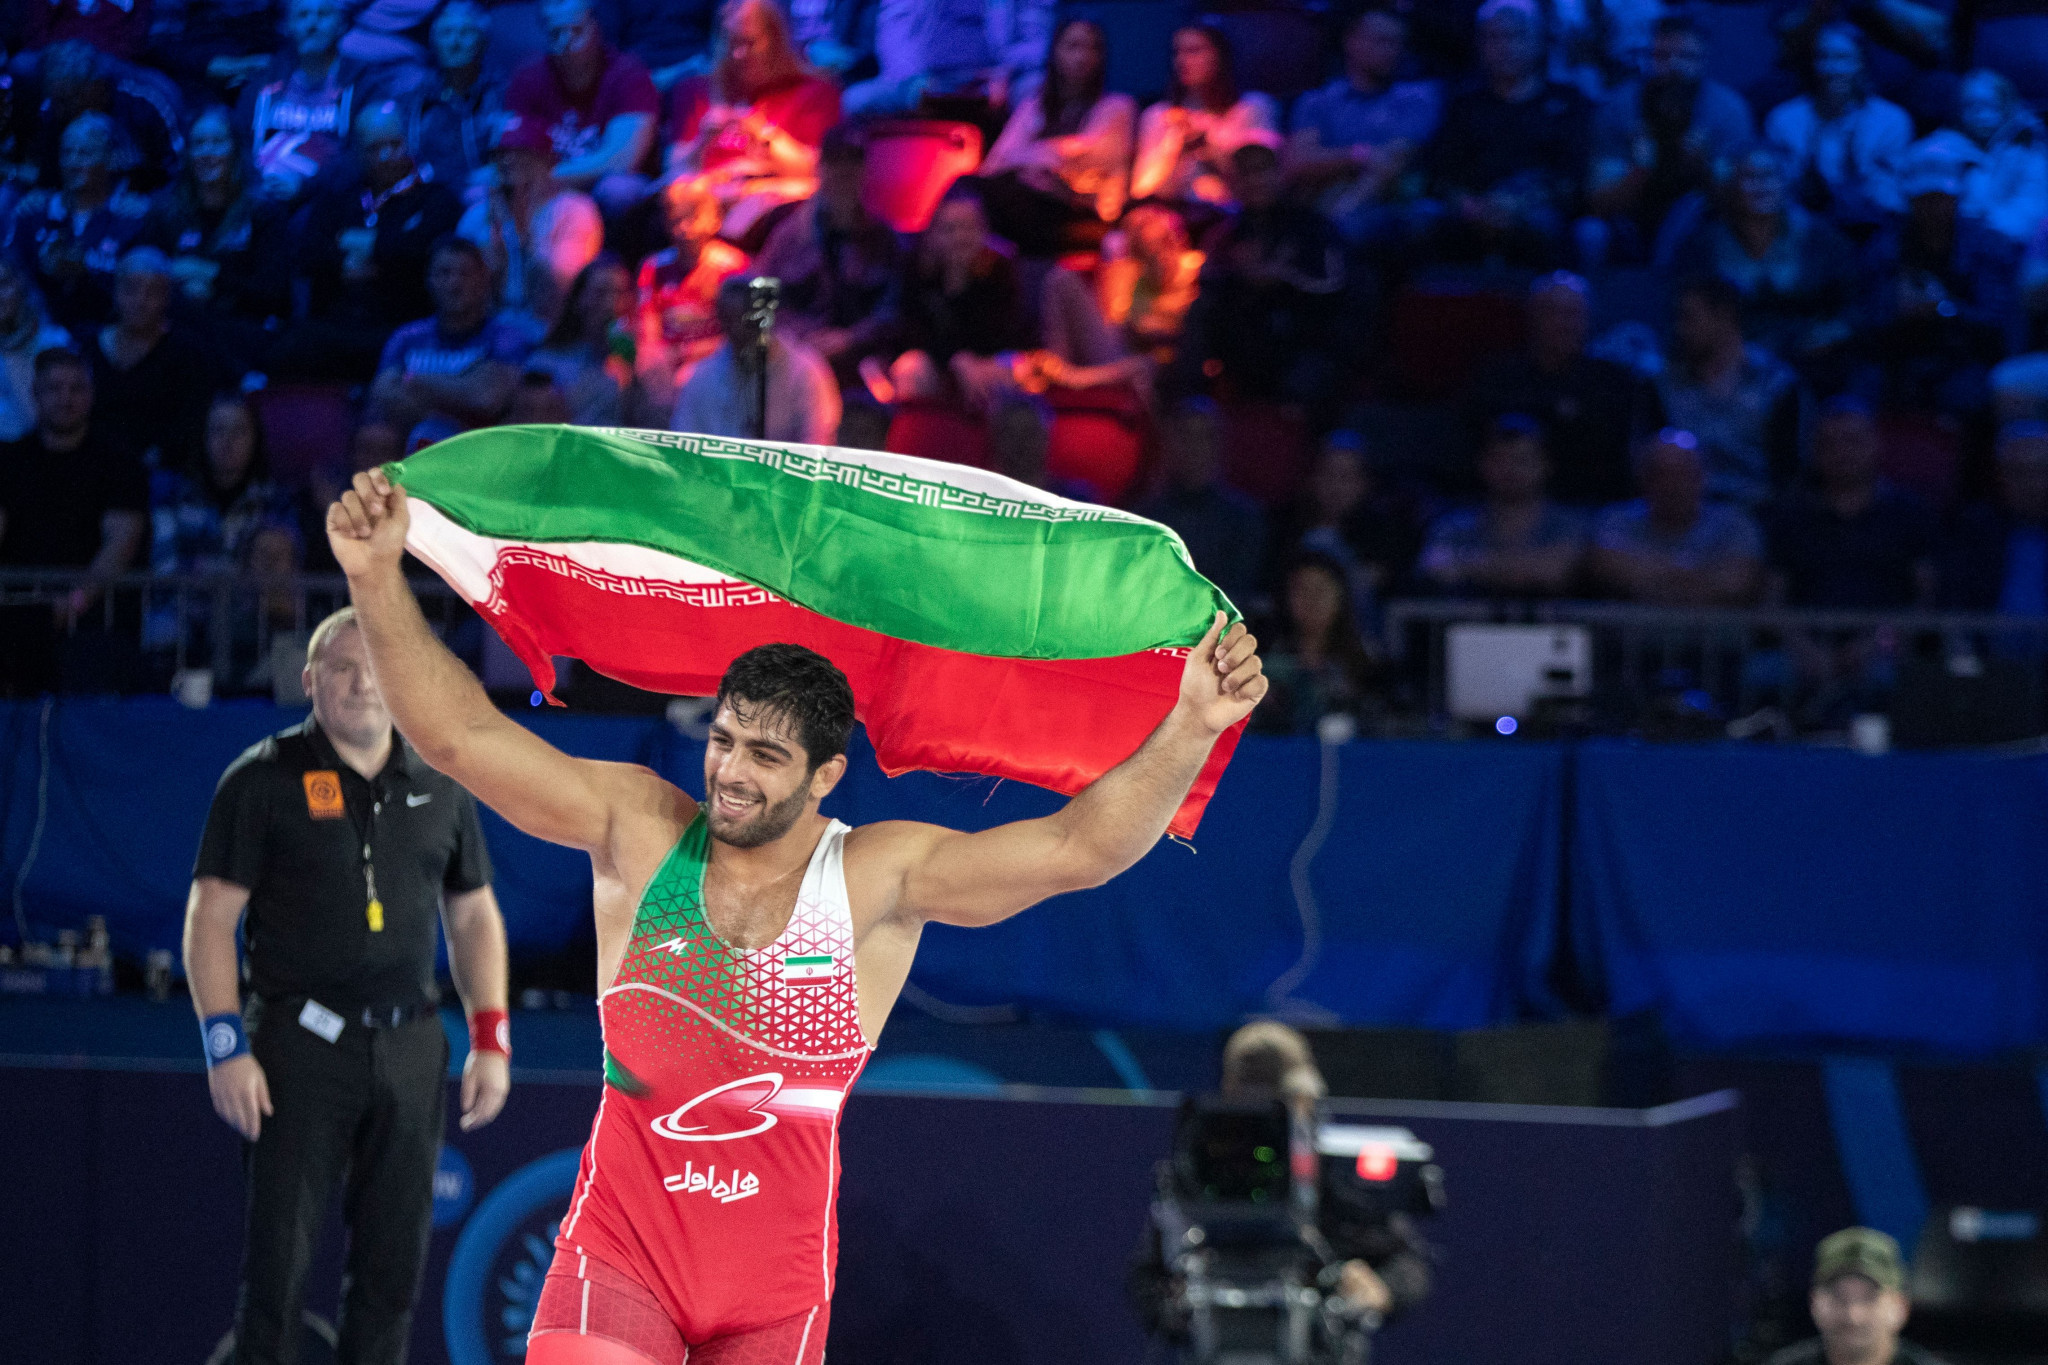 Olympic medallist Saravi one of two Iranian winners on penultimate day at UWW World Championships in Oslo